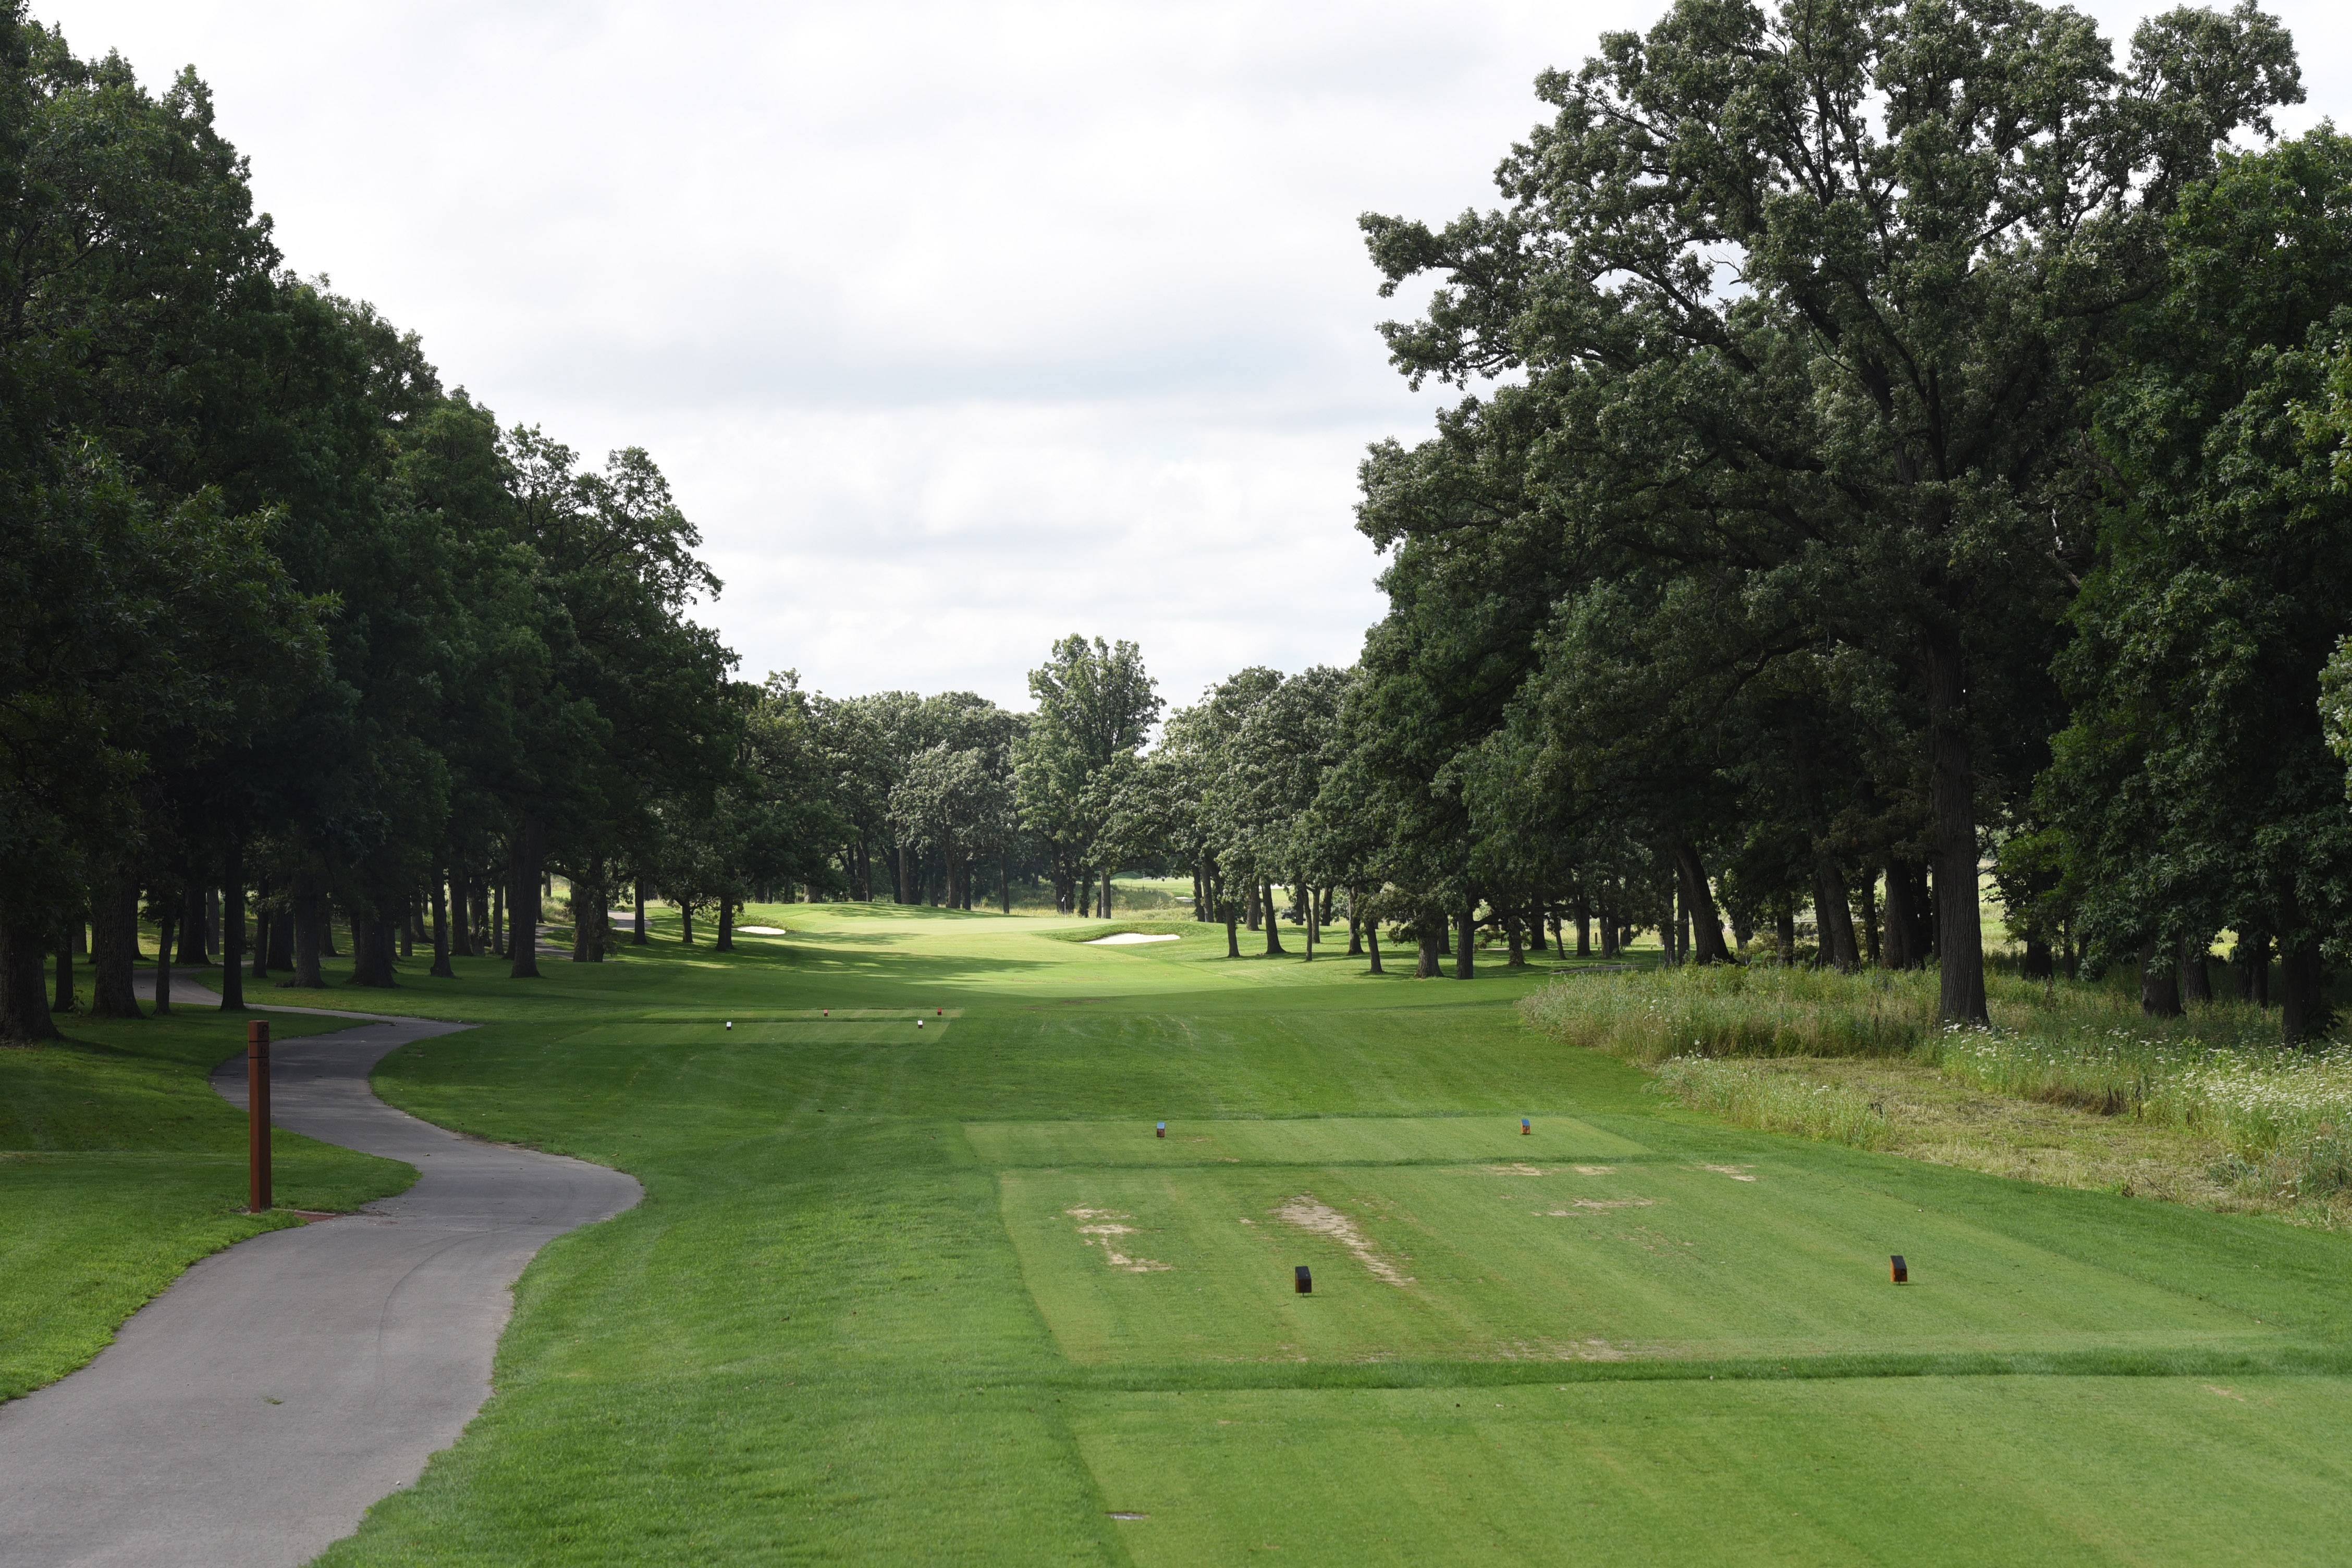 Redesigned Addison golf course passes rainy May test